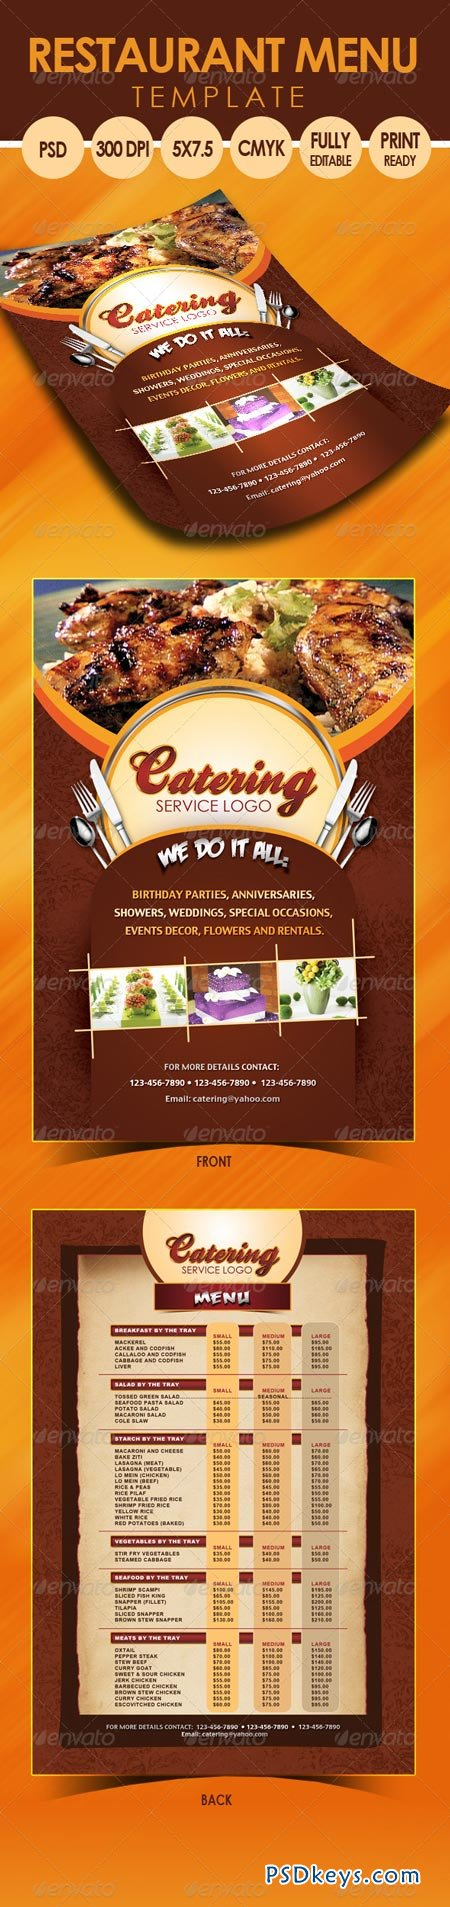 Catering Menu Template (Flyer) 3318145 » Free Download Photoshop ...